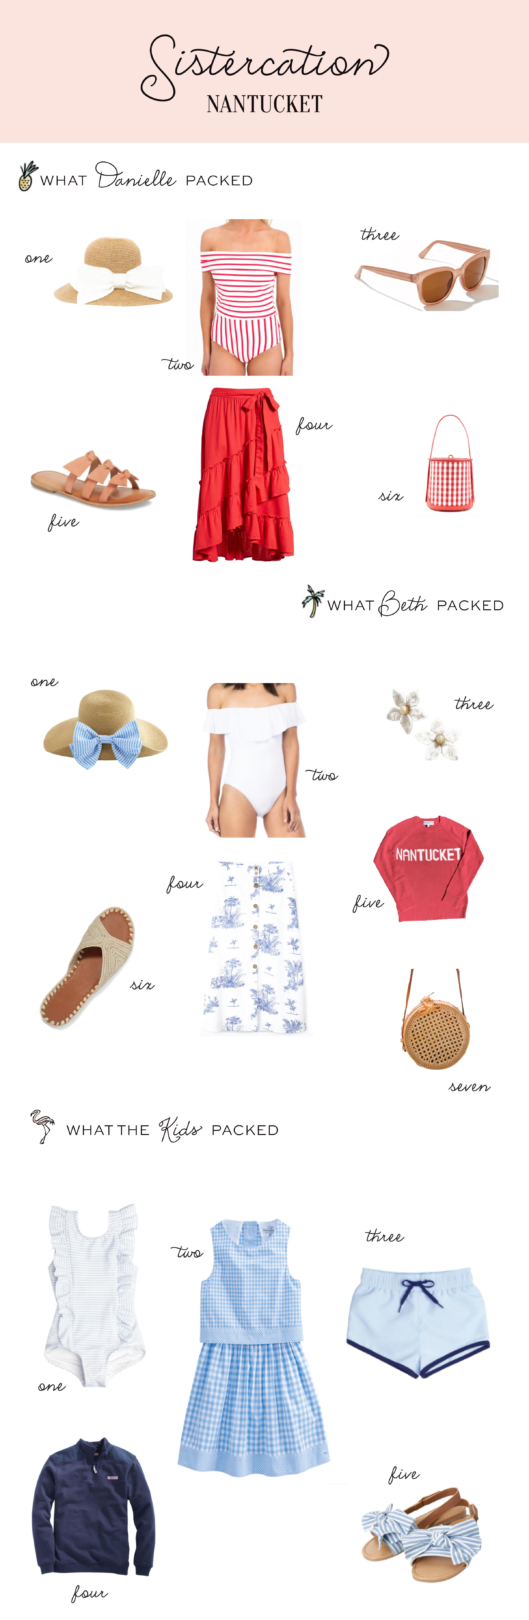 Travel: What we packed for Nantucket with Palm Beach Lately